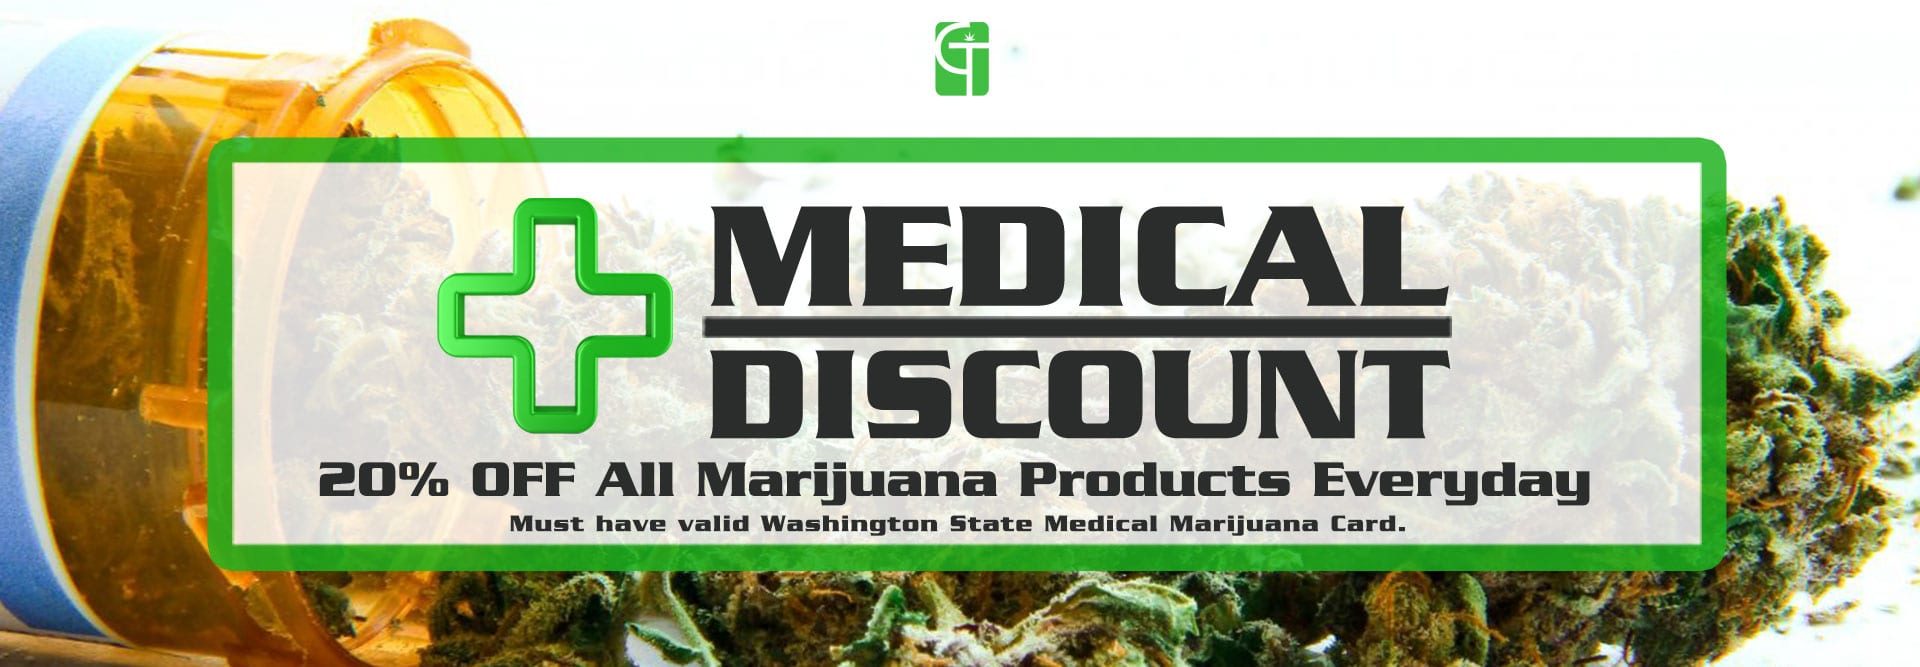 medical-marijuana-discount